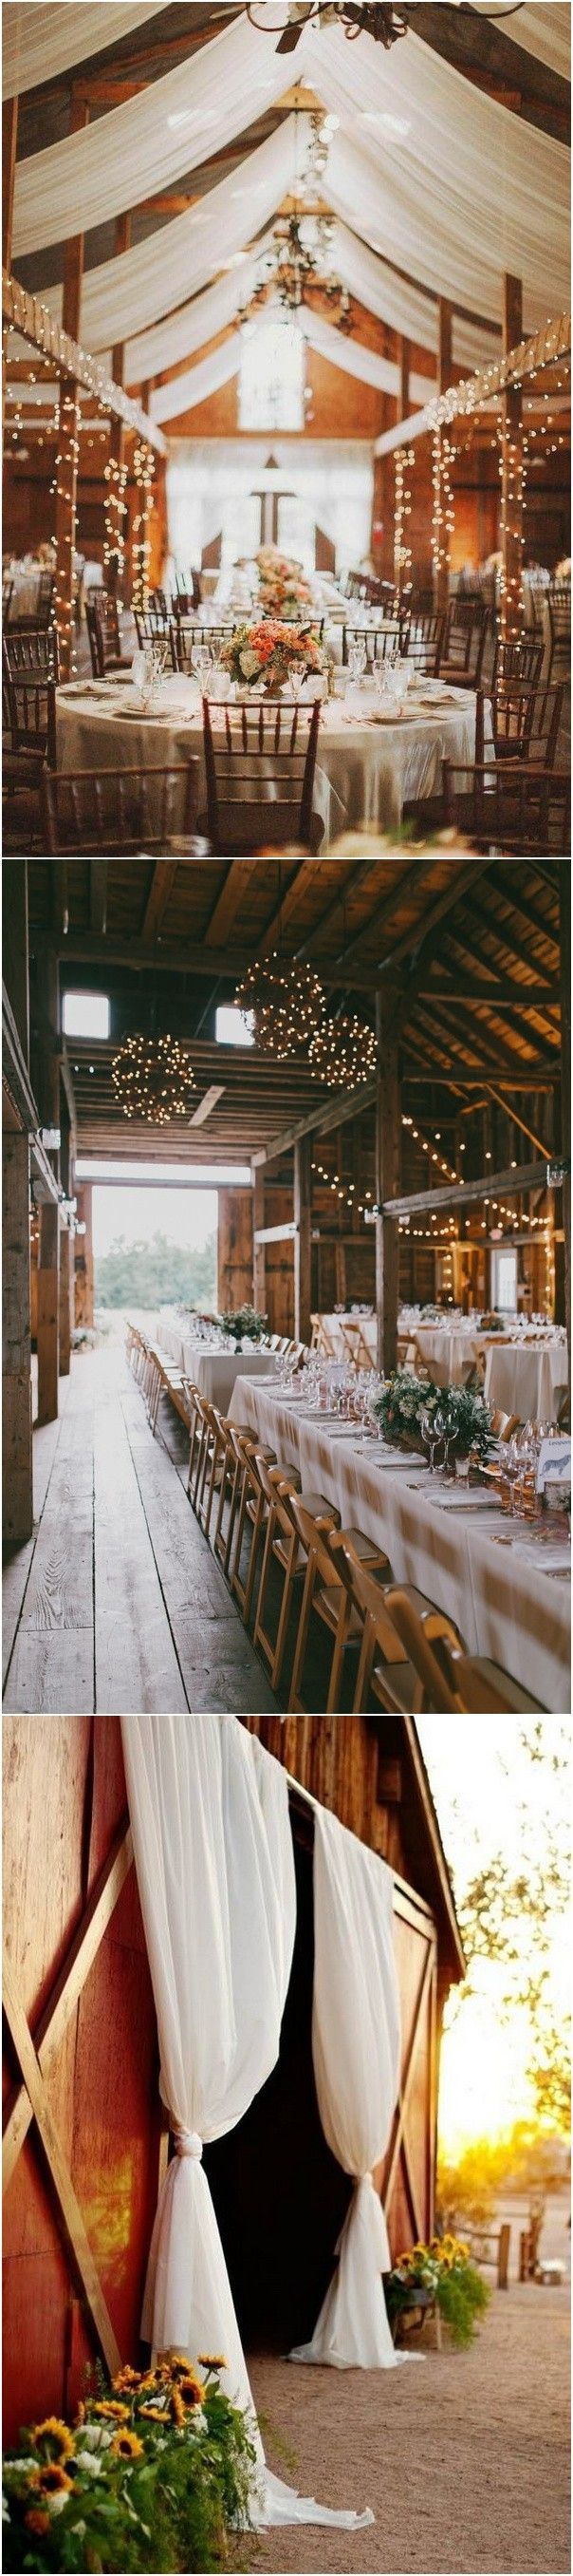 budget wedding venues north yorkshire%0A    Gorgeous Ideas for a Rustic Barn Wedding